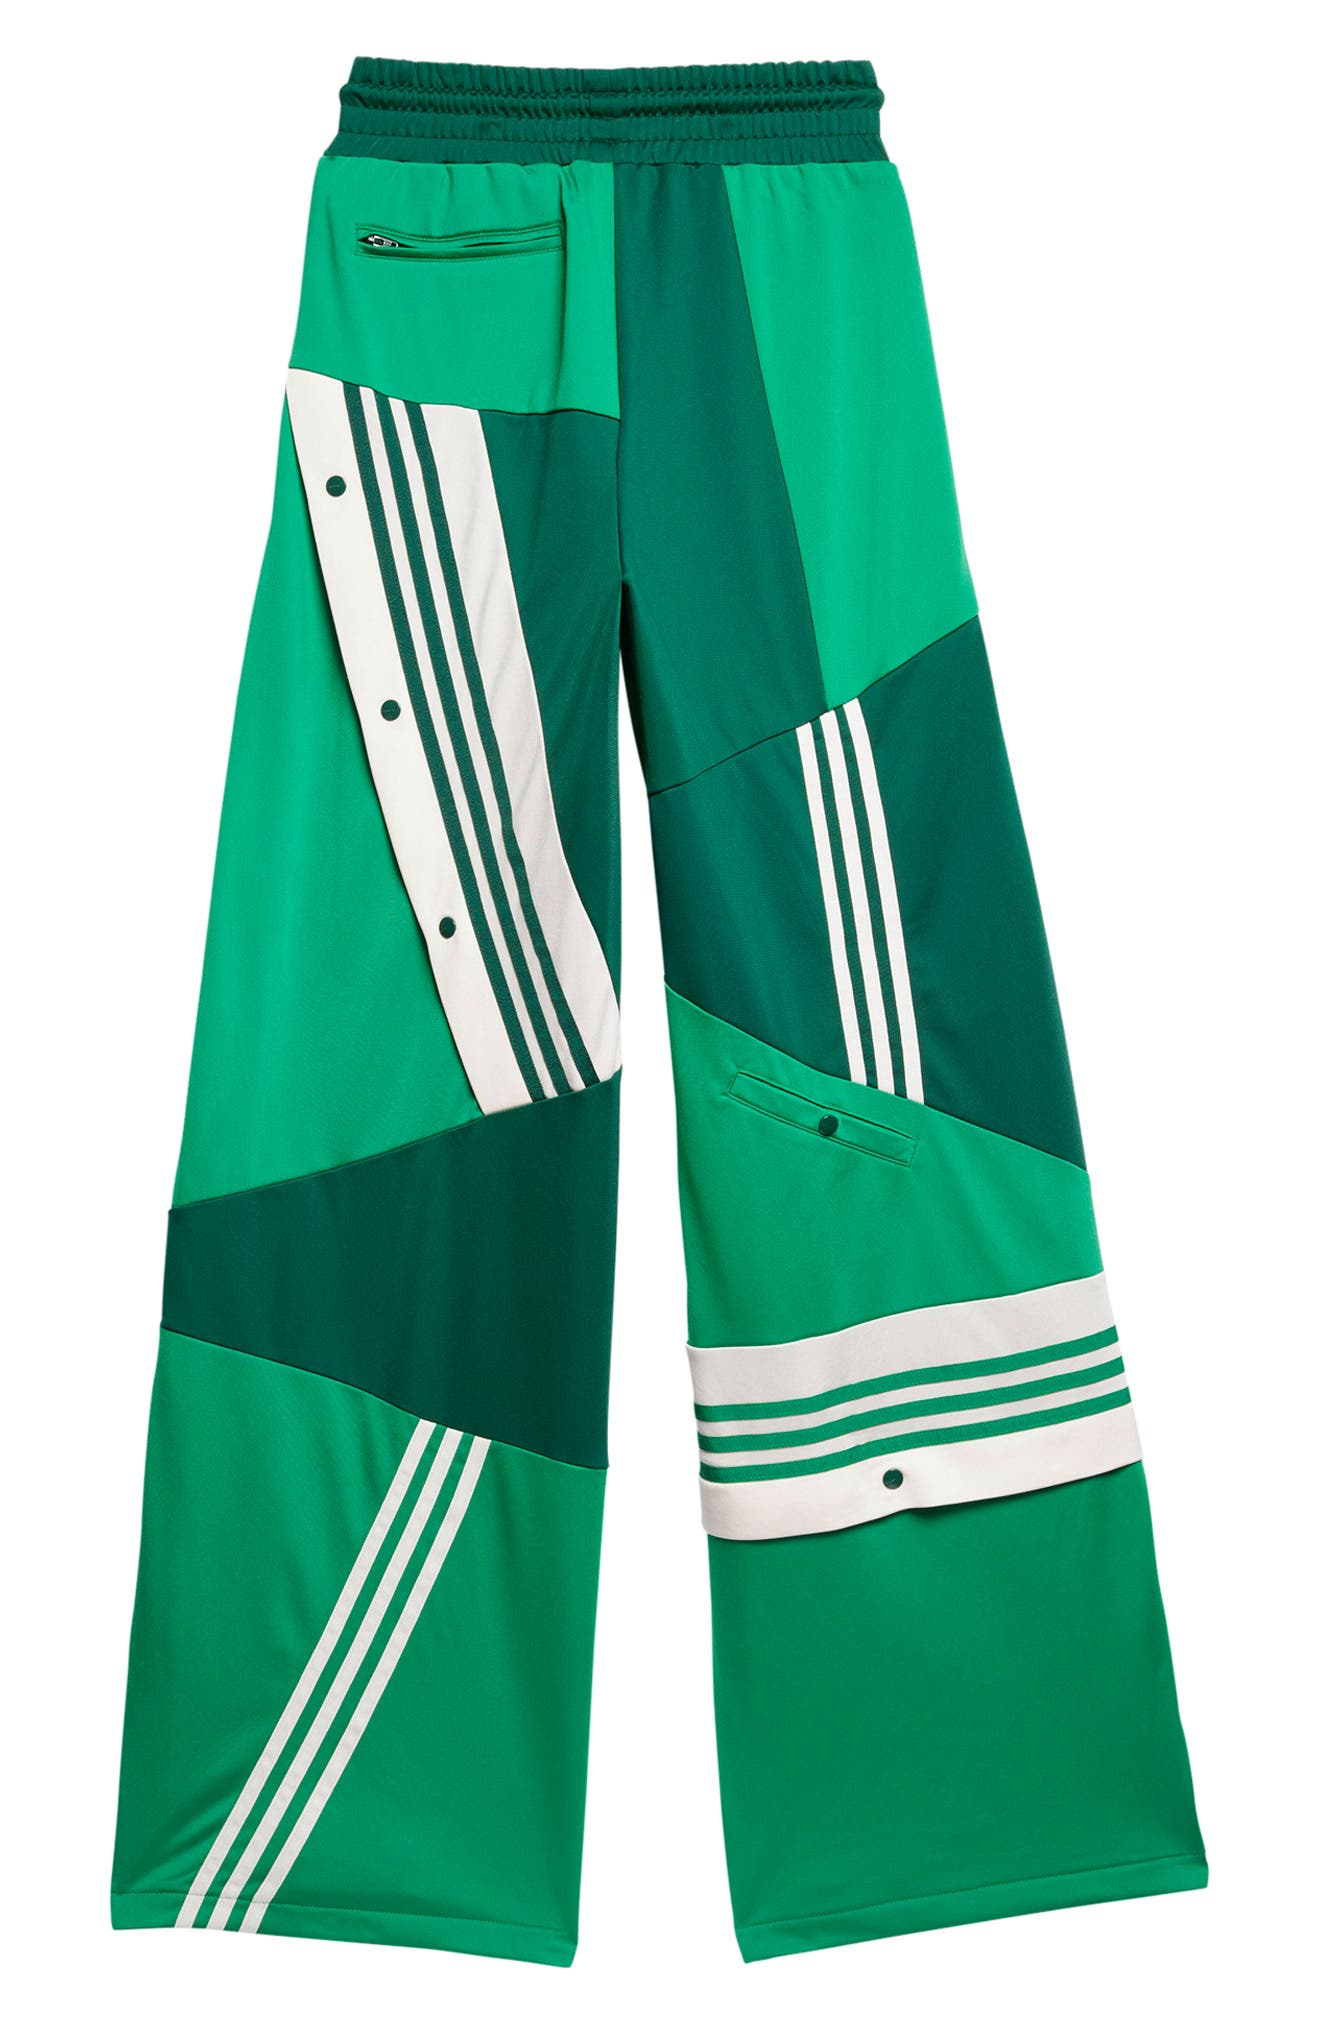 Originals x Daniëlle Cathari Track Pants,                             Alternate thumbnail 9, color,                             360